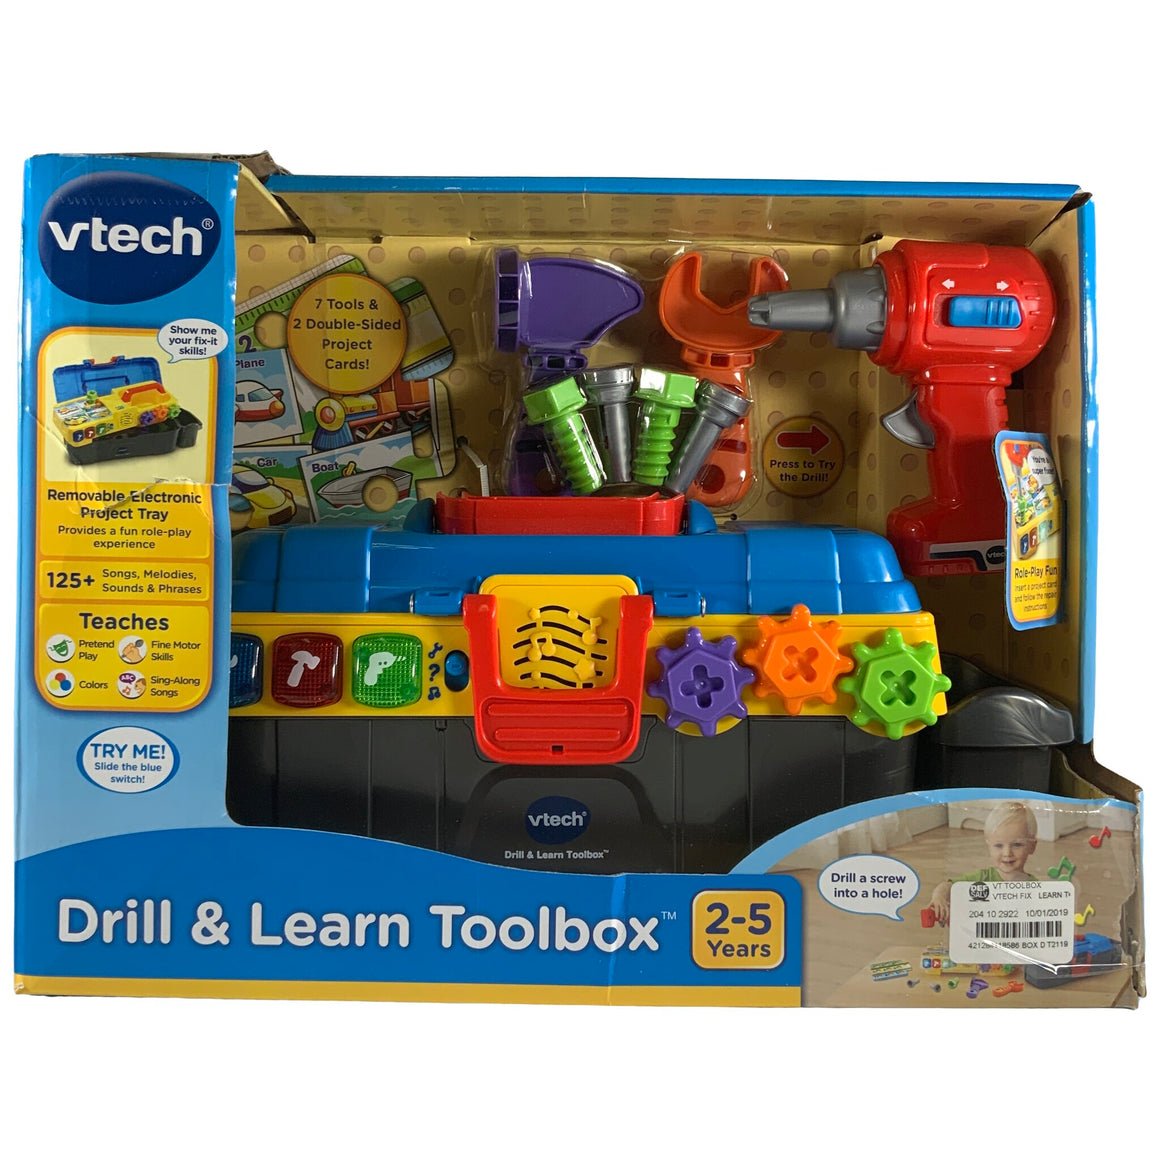 Vtech - Drill & Learn Toolbox